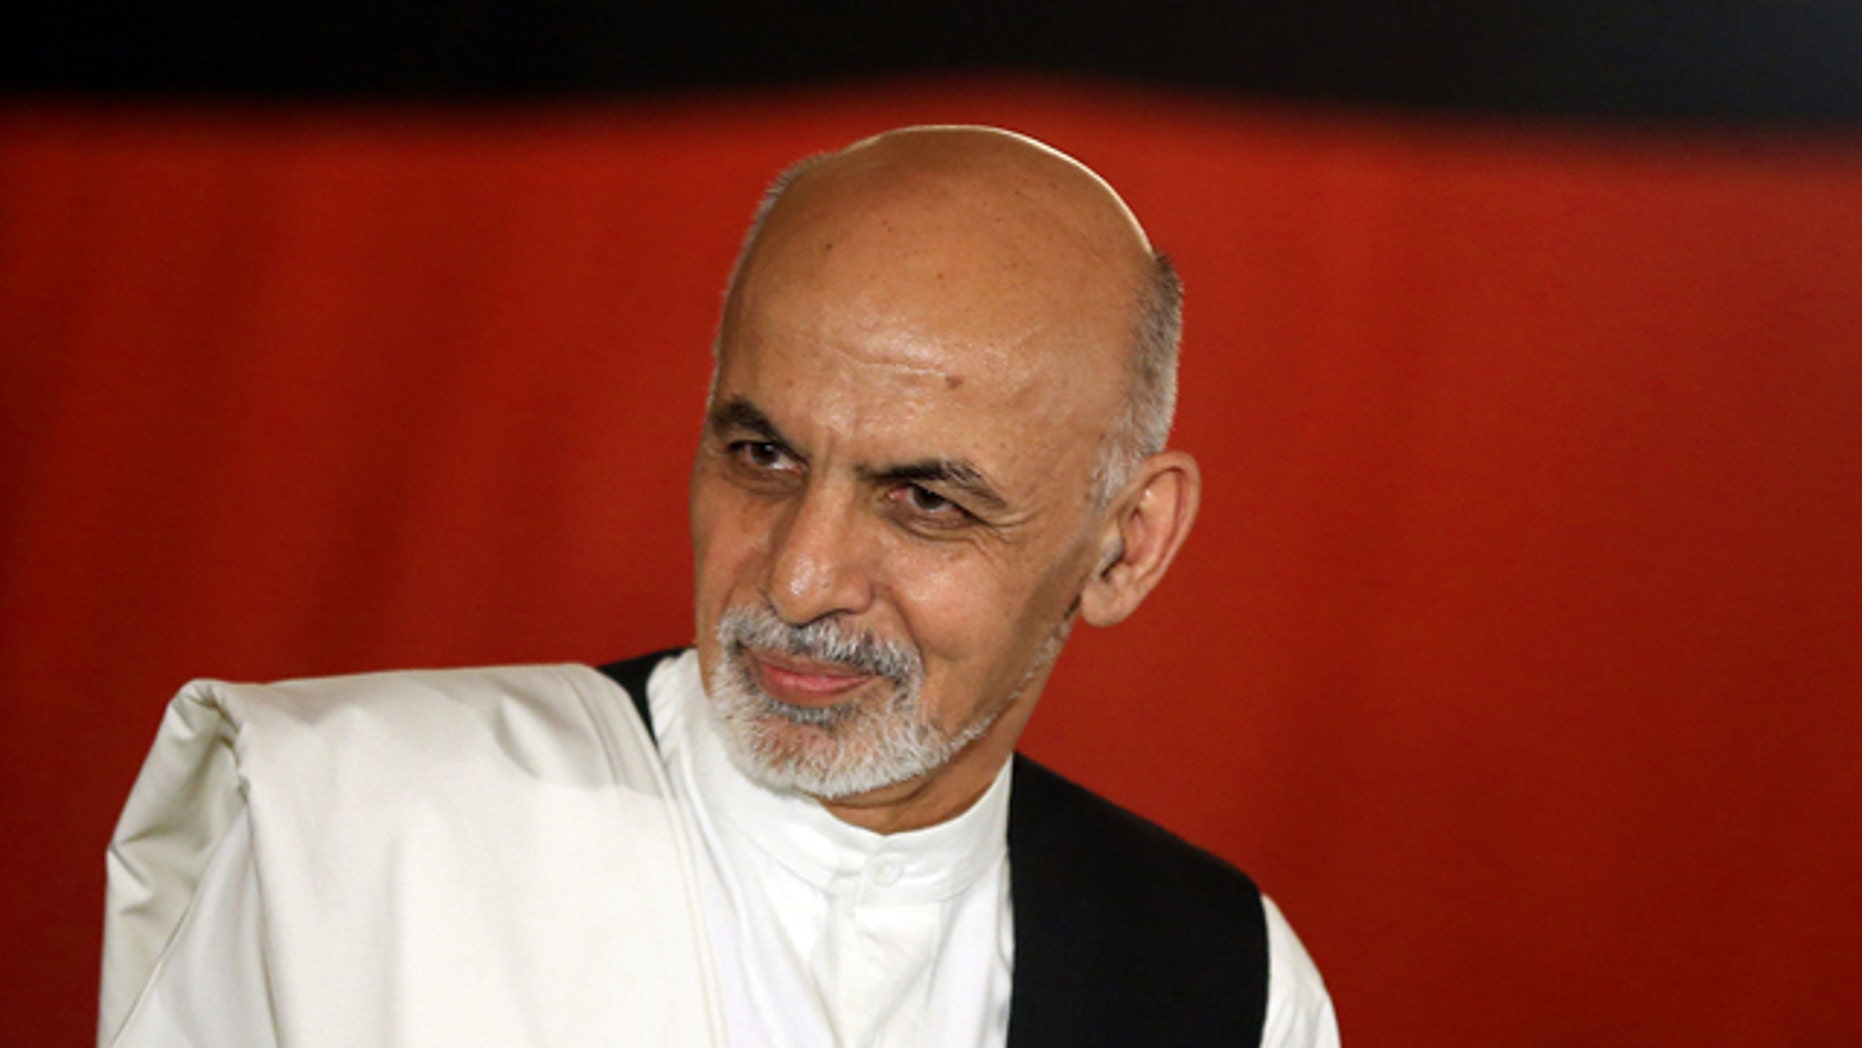 FILE - In this file Wednesday, Sept. 10, 2014 photo, Afghan presidential candidate Ashraf Ghani Ahmadzai speaks during a news conference at his residence in Kabul. (AP Photo/Massoud Hossaini)